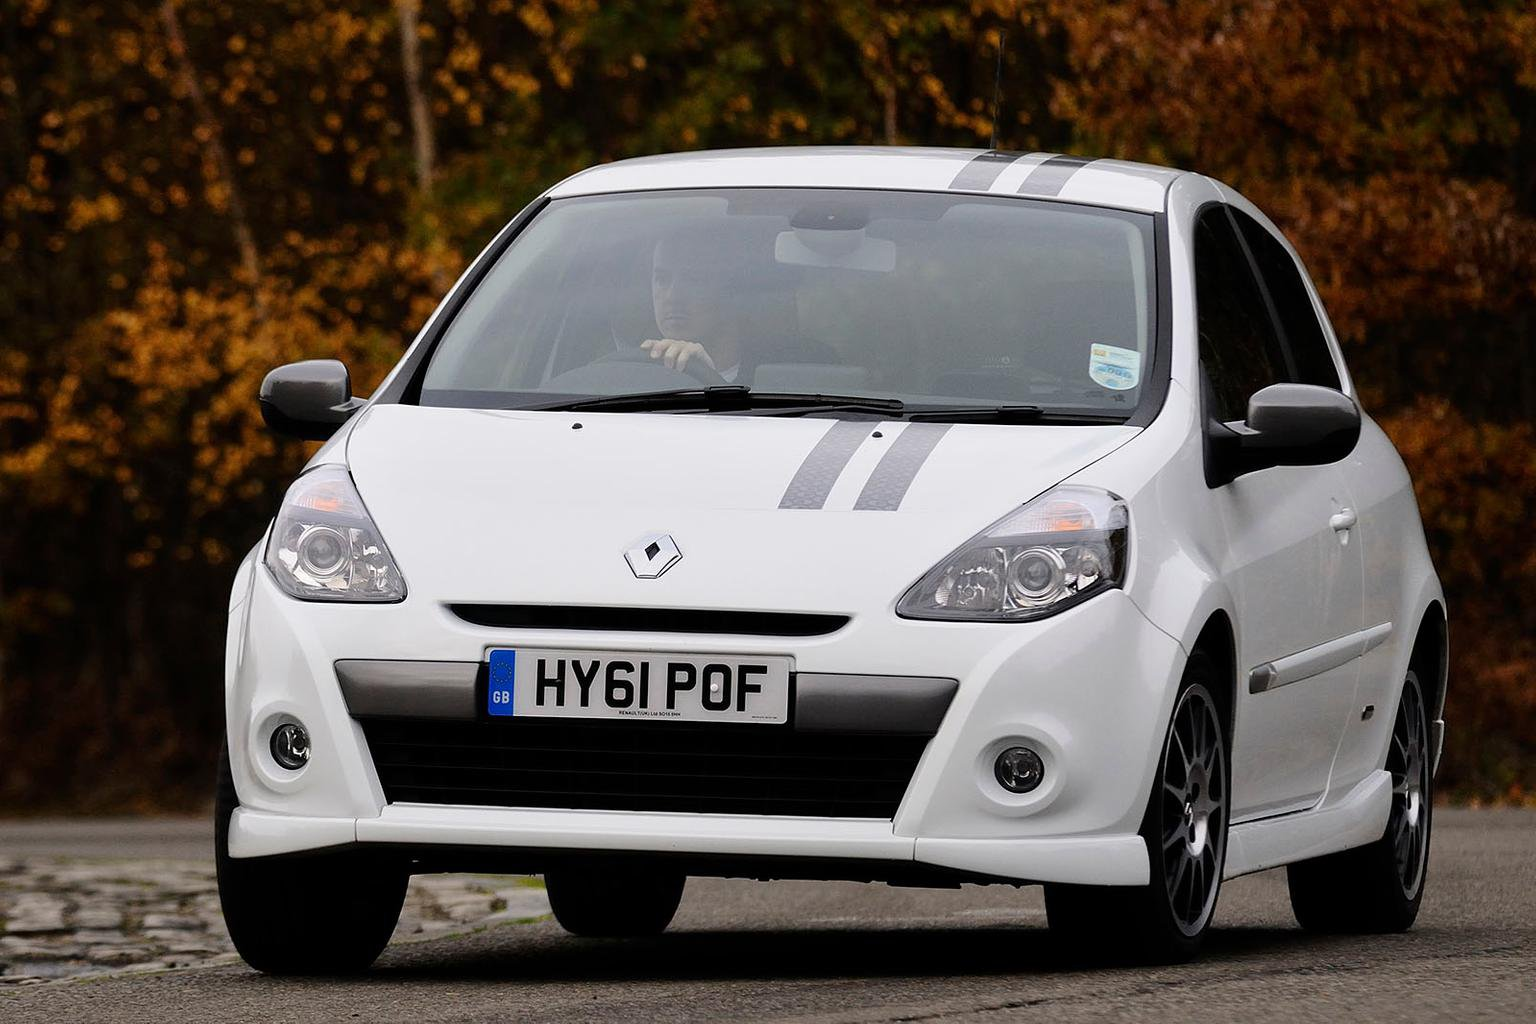 Used test: Renault Clio Gordini vs Suzuki Swift Sport